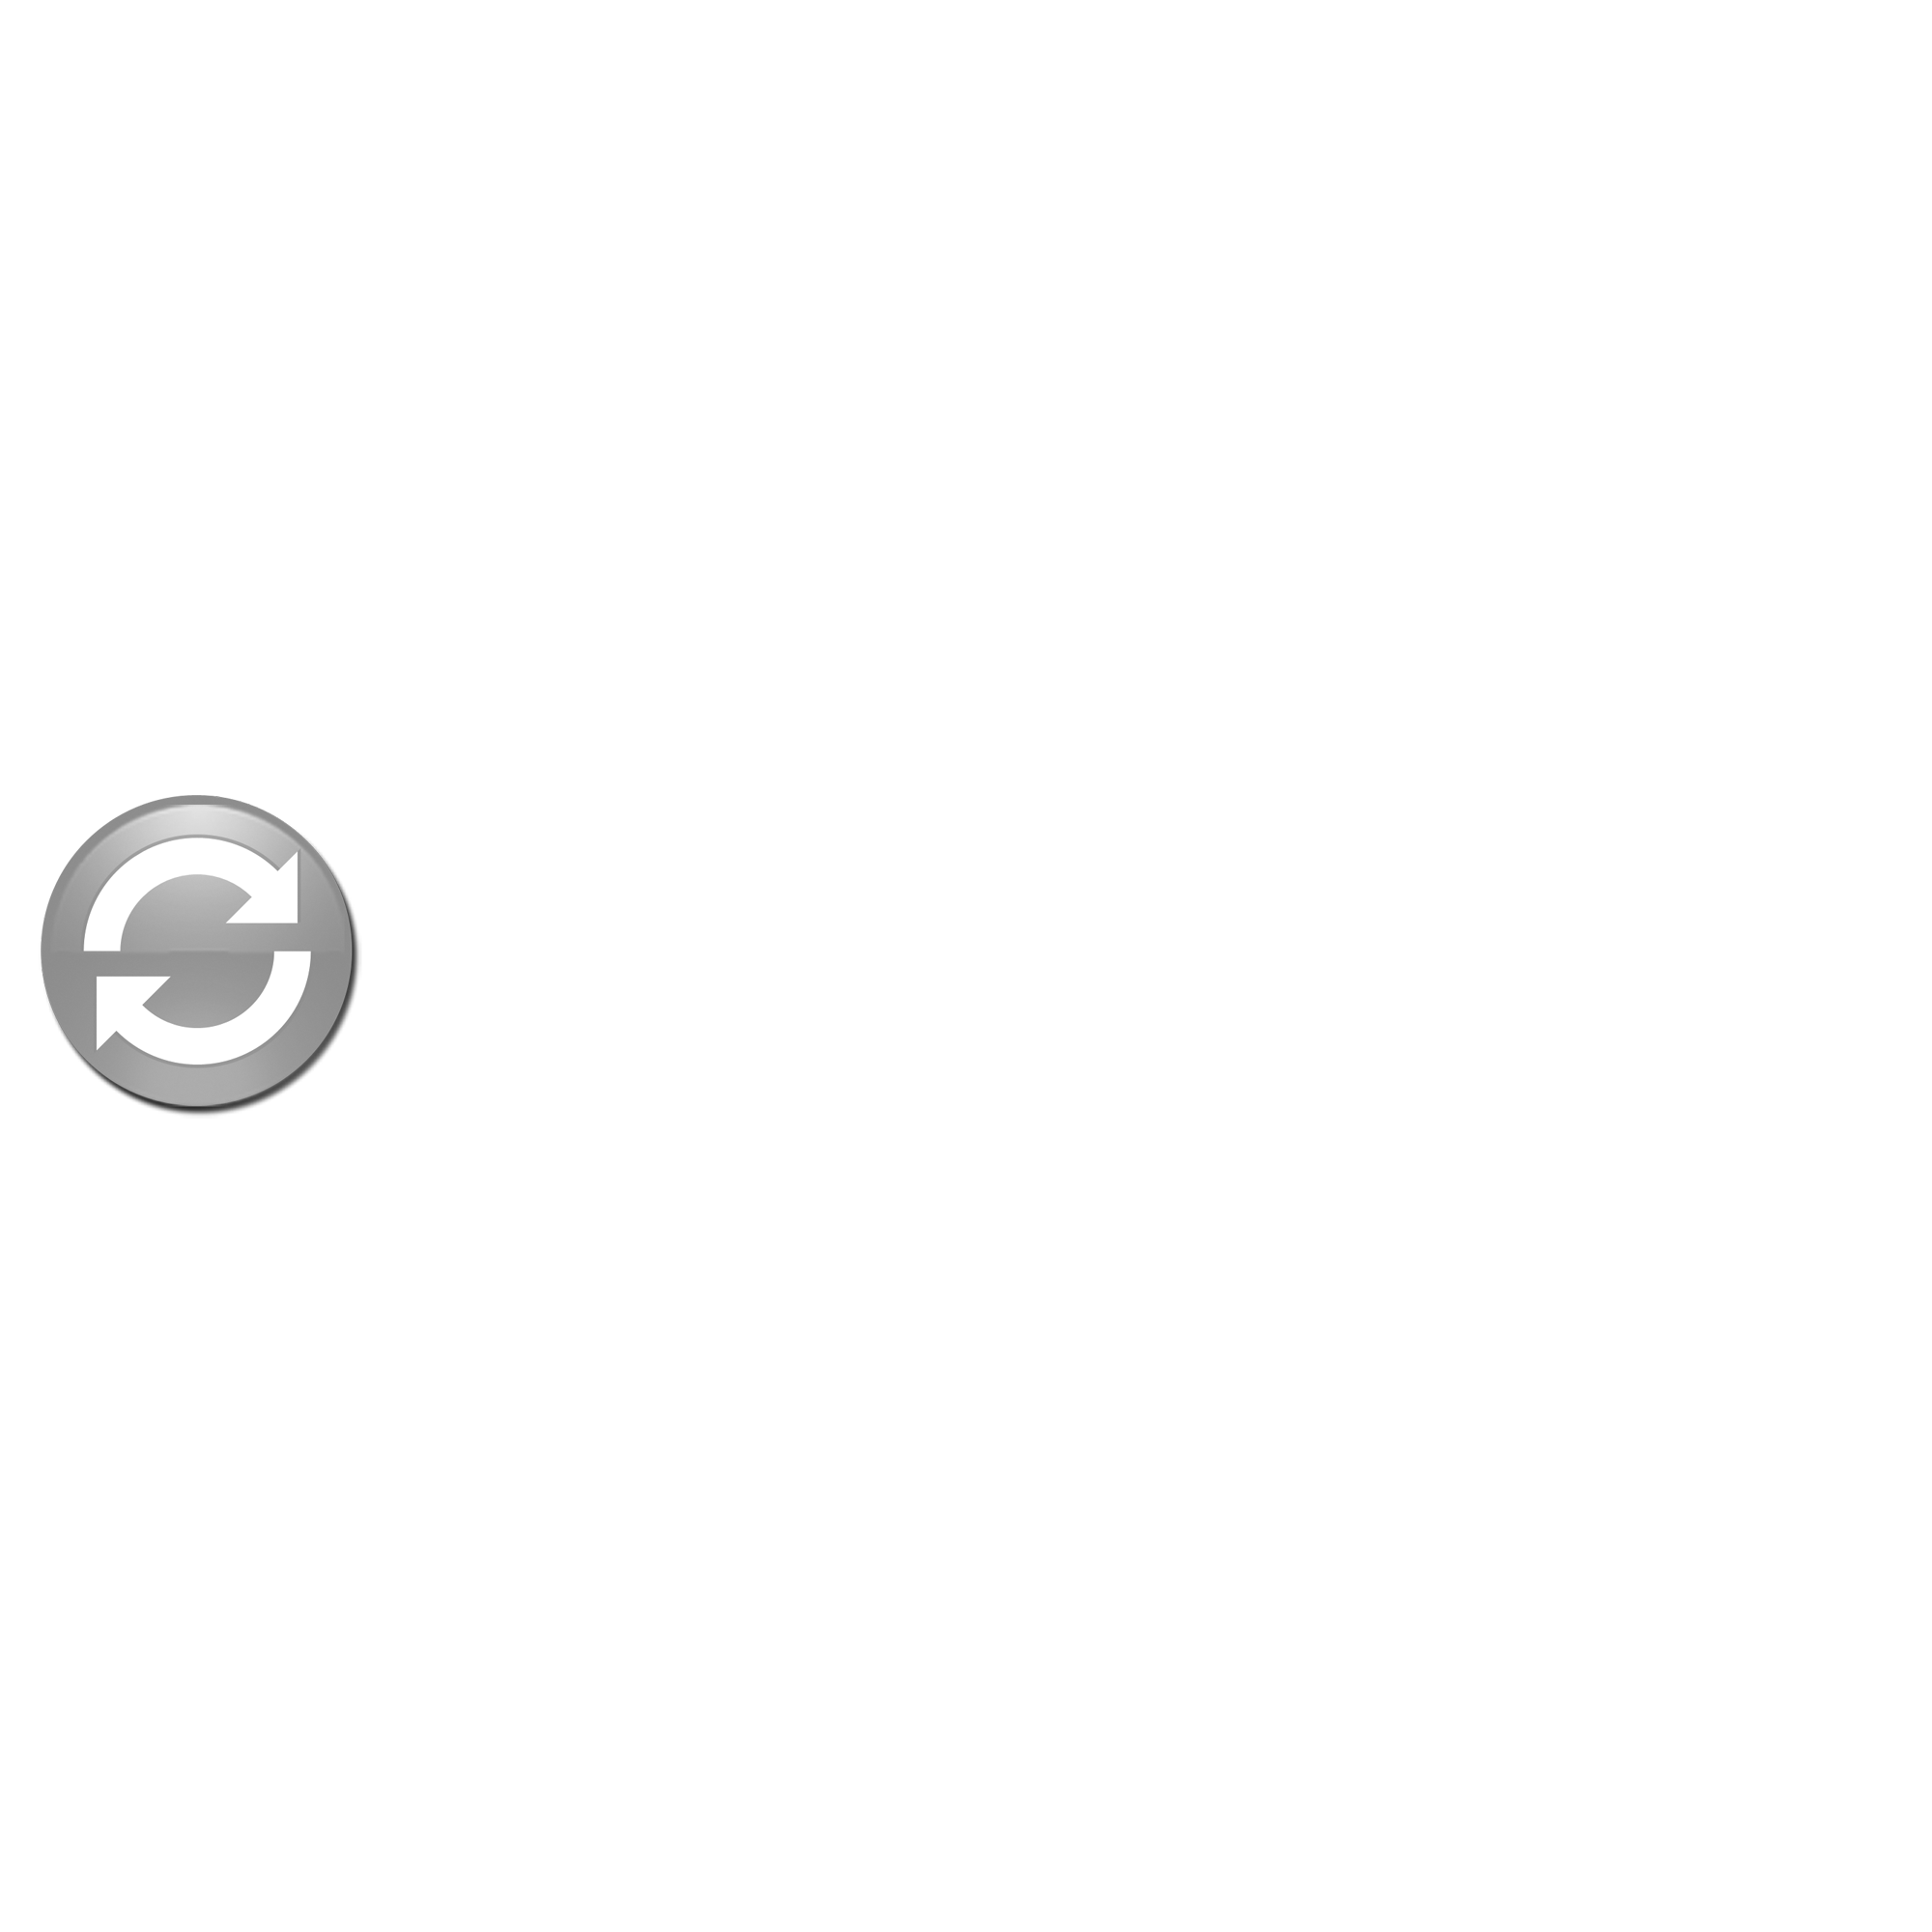 2000px-Denyall.png